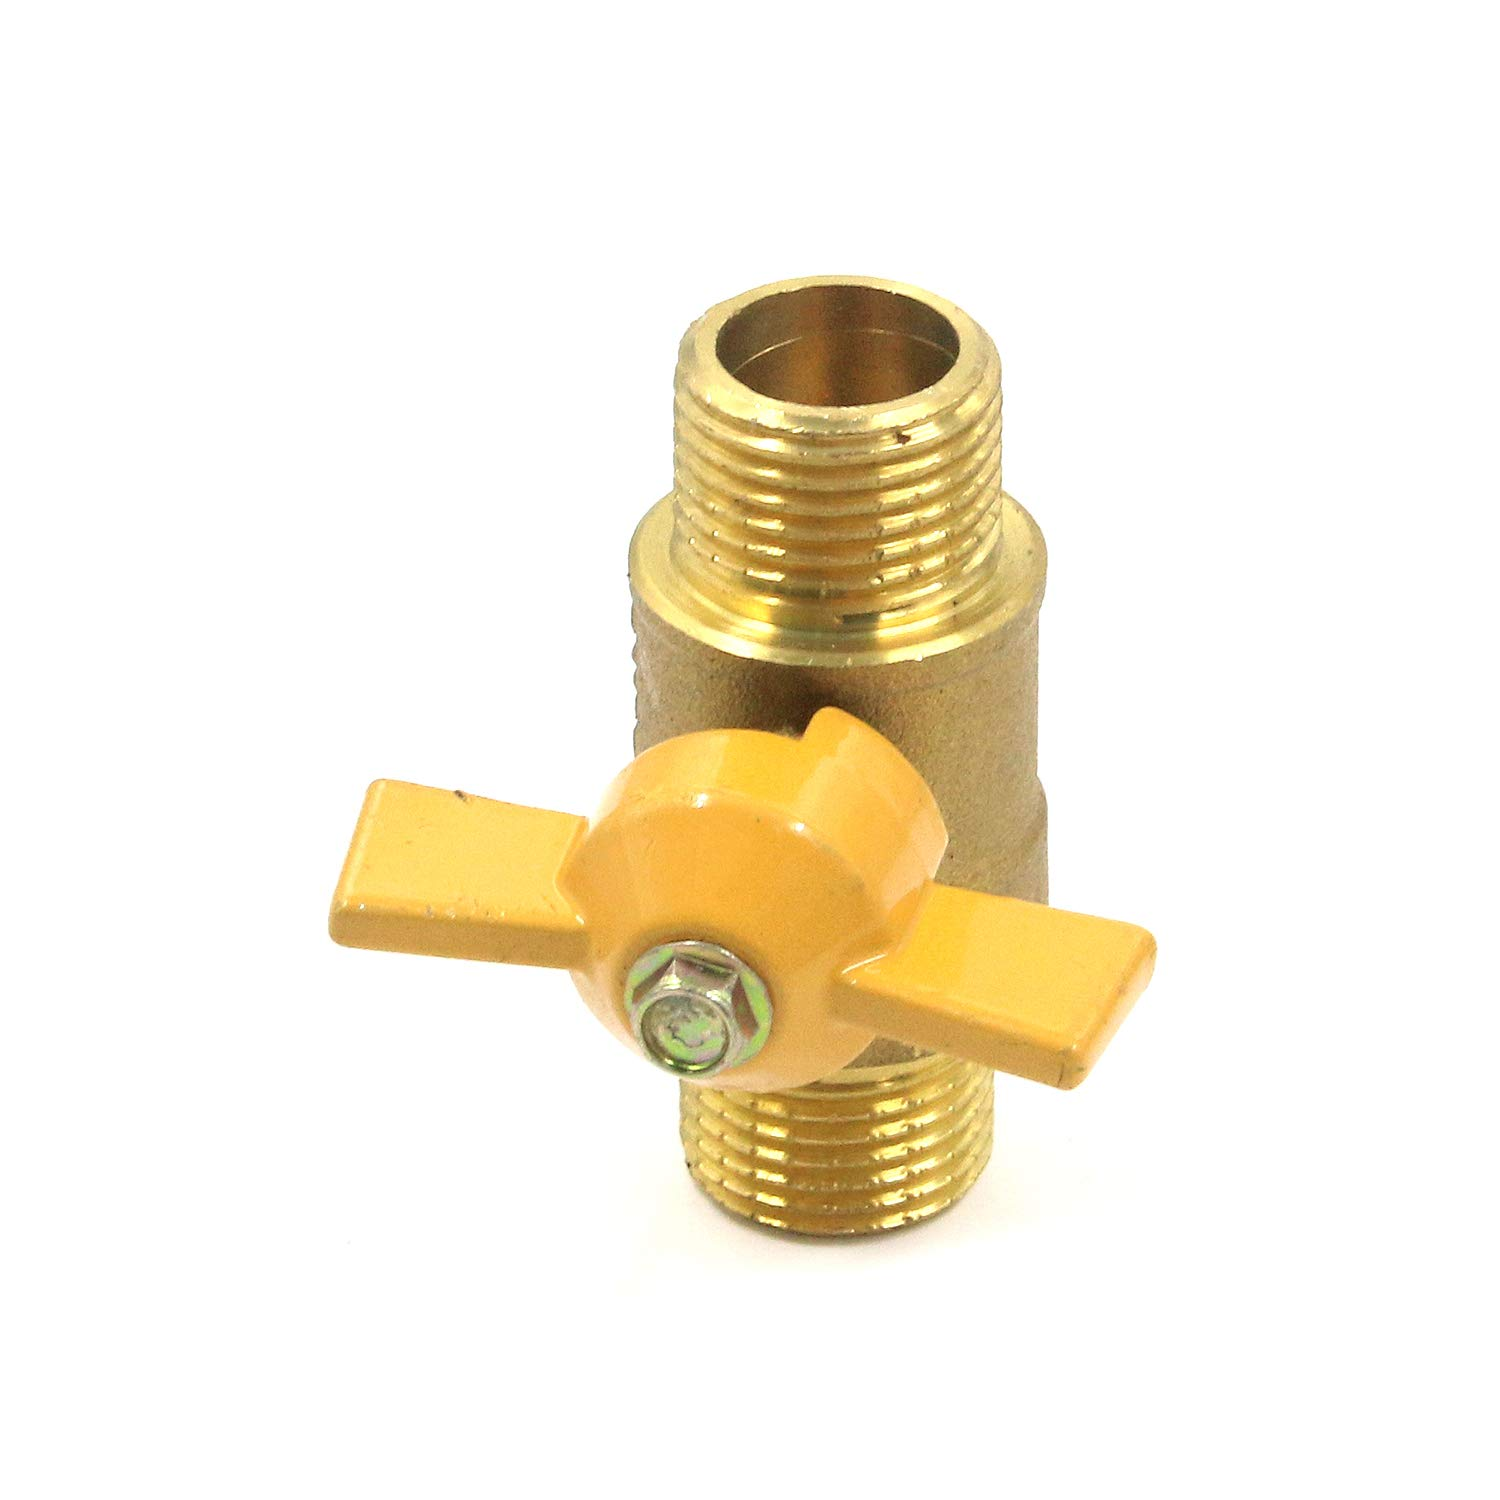 Kingston Valves 710D56S1L1-120 3//4 x 1//120 psi ASME Section VIII Steam Open Lever Silicone Disc D Orifice Brass Body and Trim Safety Valve